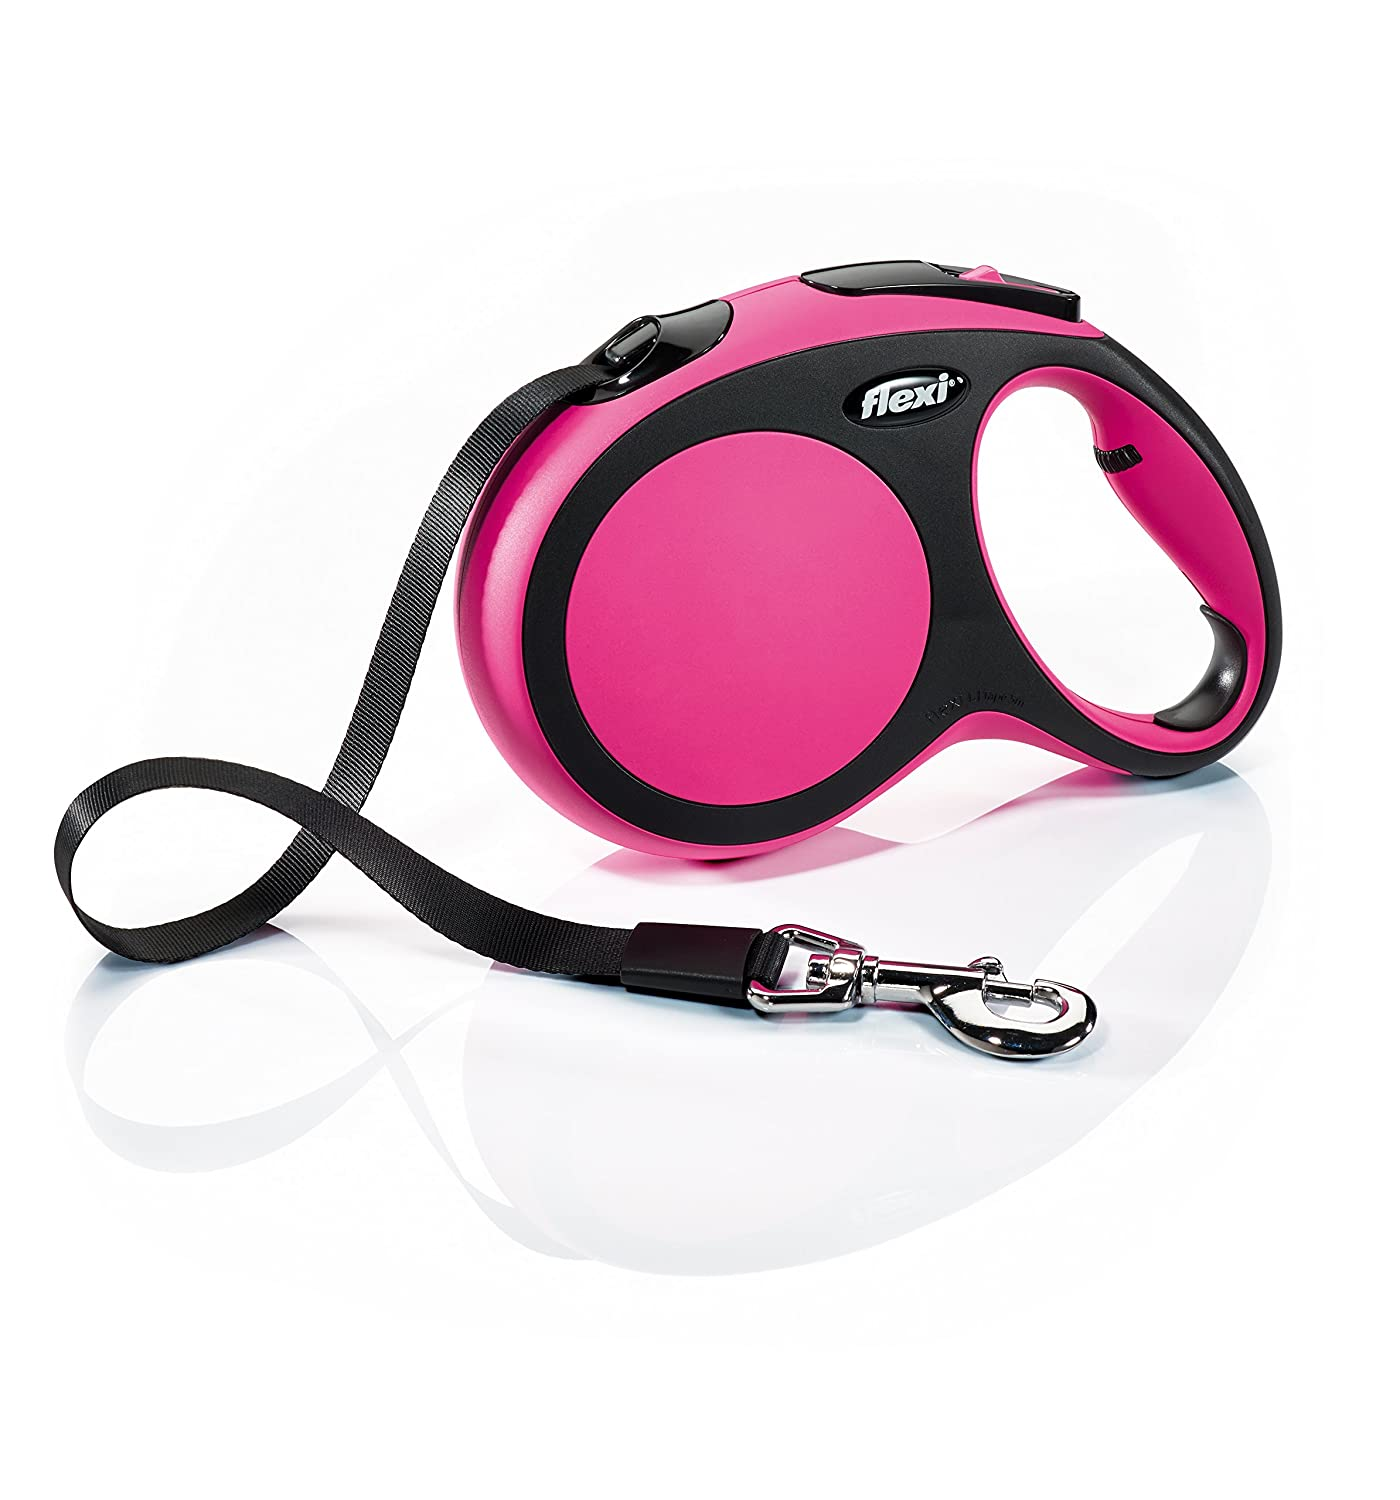 Flexi New Comfort Retractable Dog Leash (Tape), 16 ft, Large, Pink